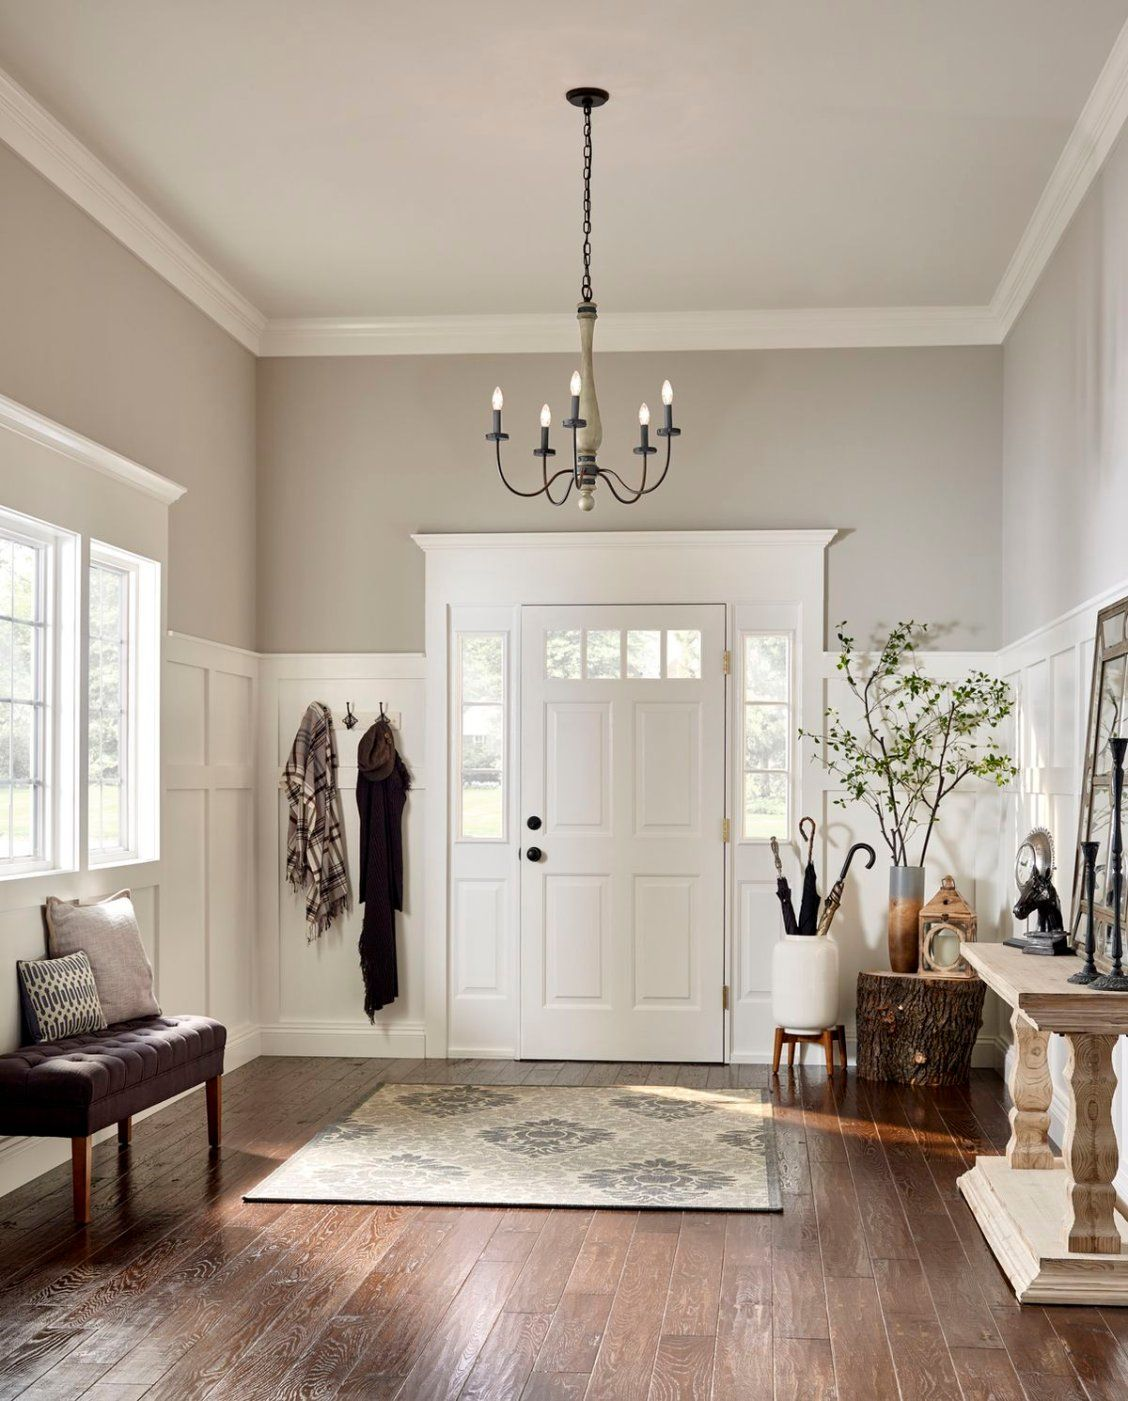 Living Room Lighting Ideas On A Budget: Effortlessly Elevate And Enhance Your Home's Entryway With